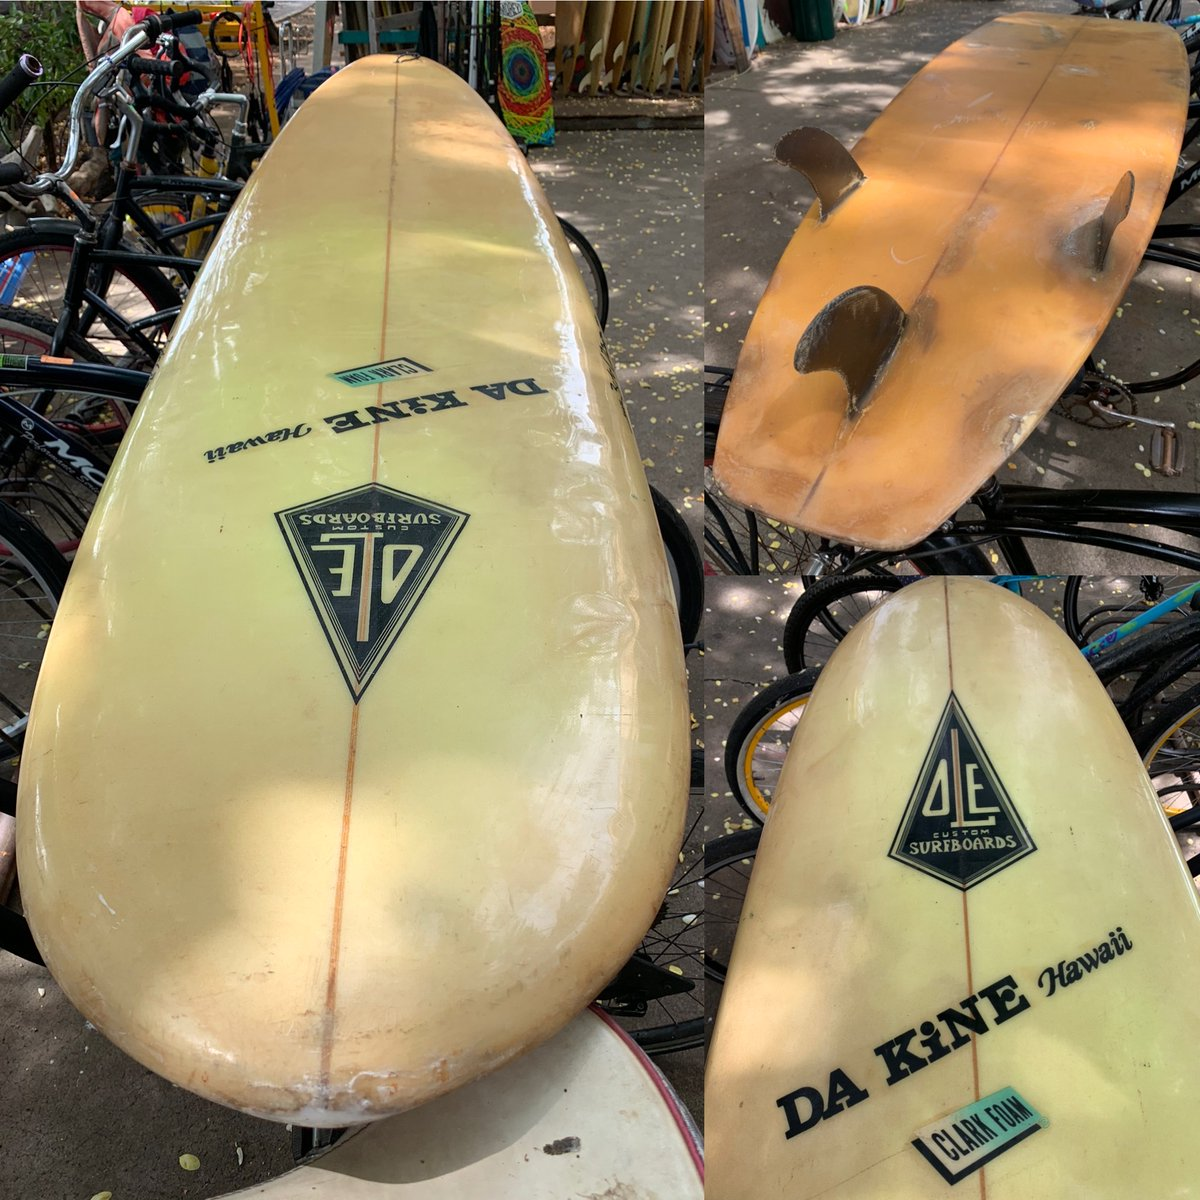 Ole Longboard 8 ft. Classic board, fair condition $650 OBO #808-667-7689 https://t.co/aTlInRdsMW #surfboardforsale #classicsurfboard #surfing #surfer #maui #surf #longboards #olesurfboards #longboarding #hawaiisurfboards #hawaiisurfboardshapers #classicsurfboards #surfergirl https://t.co/s8Wy0eUaqZ